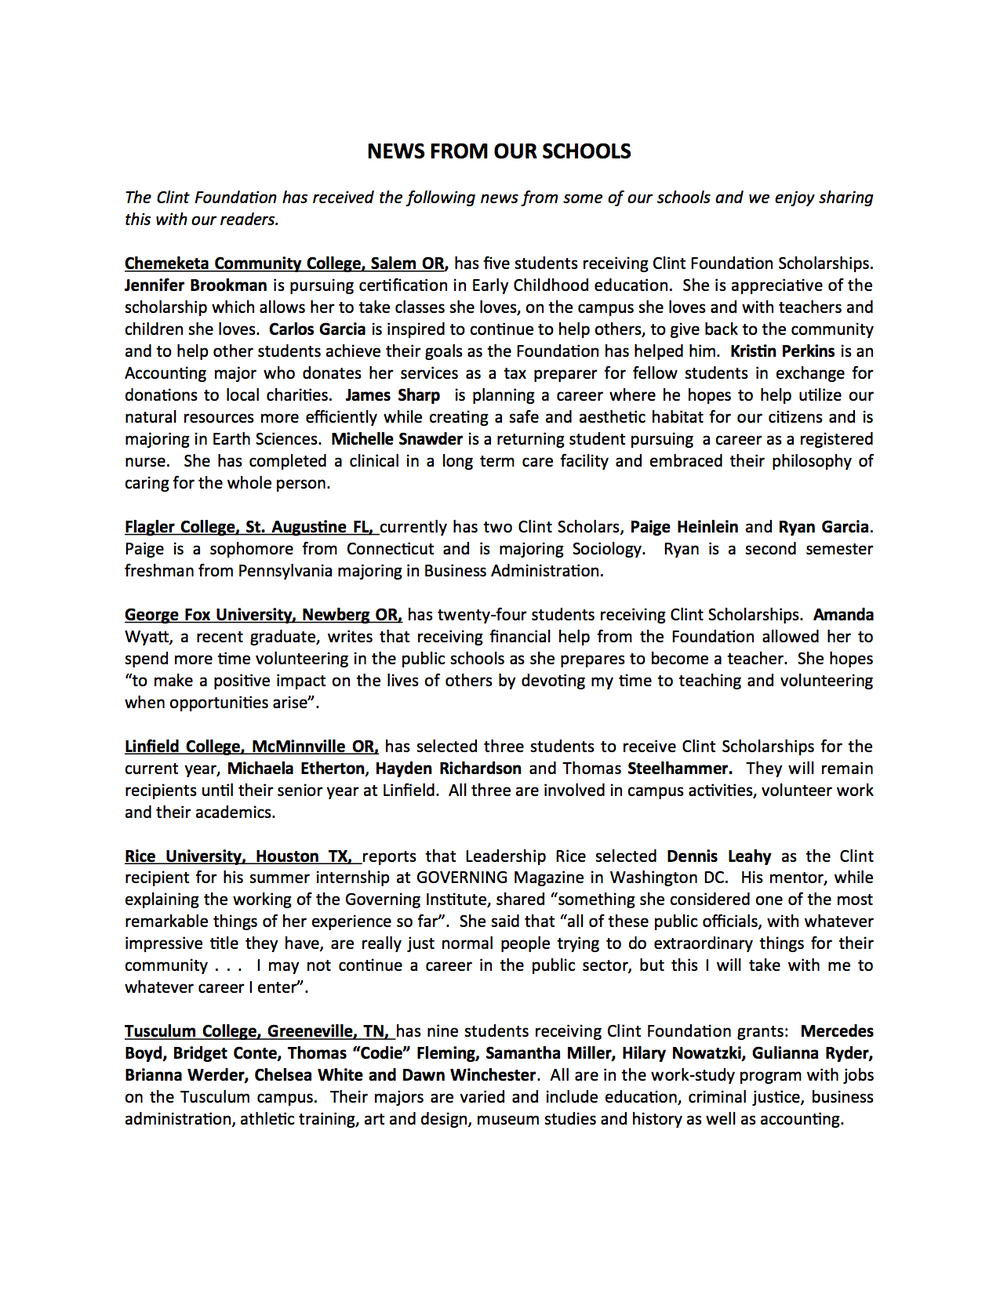 volume 14, issue 2 (3).jpg